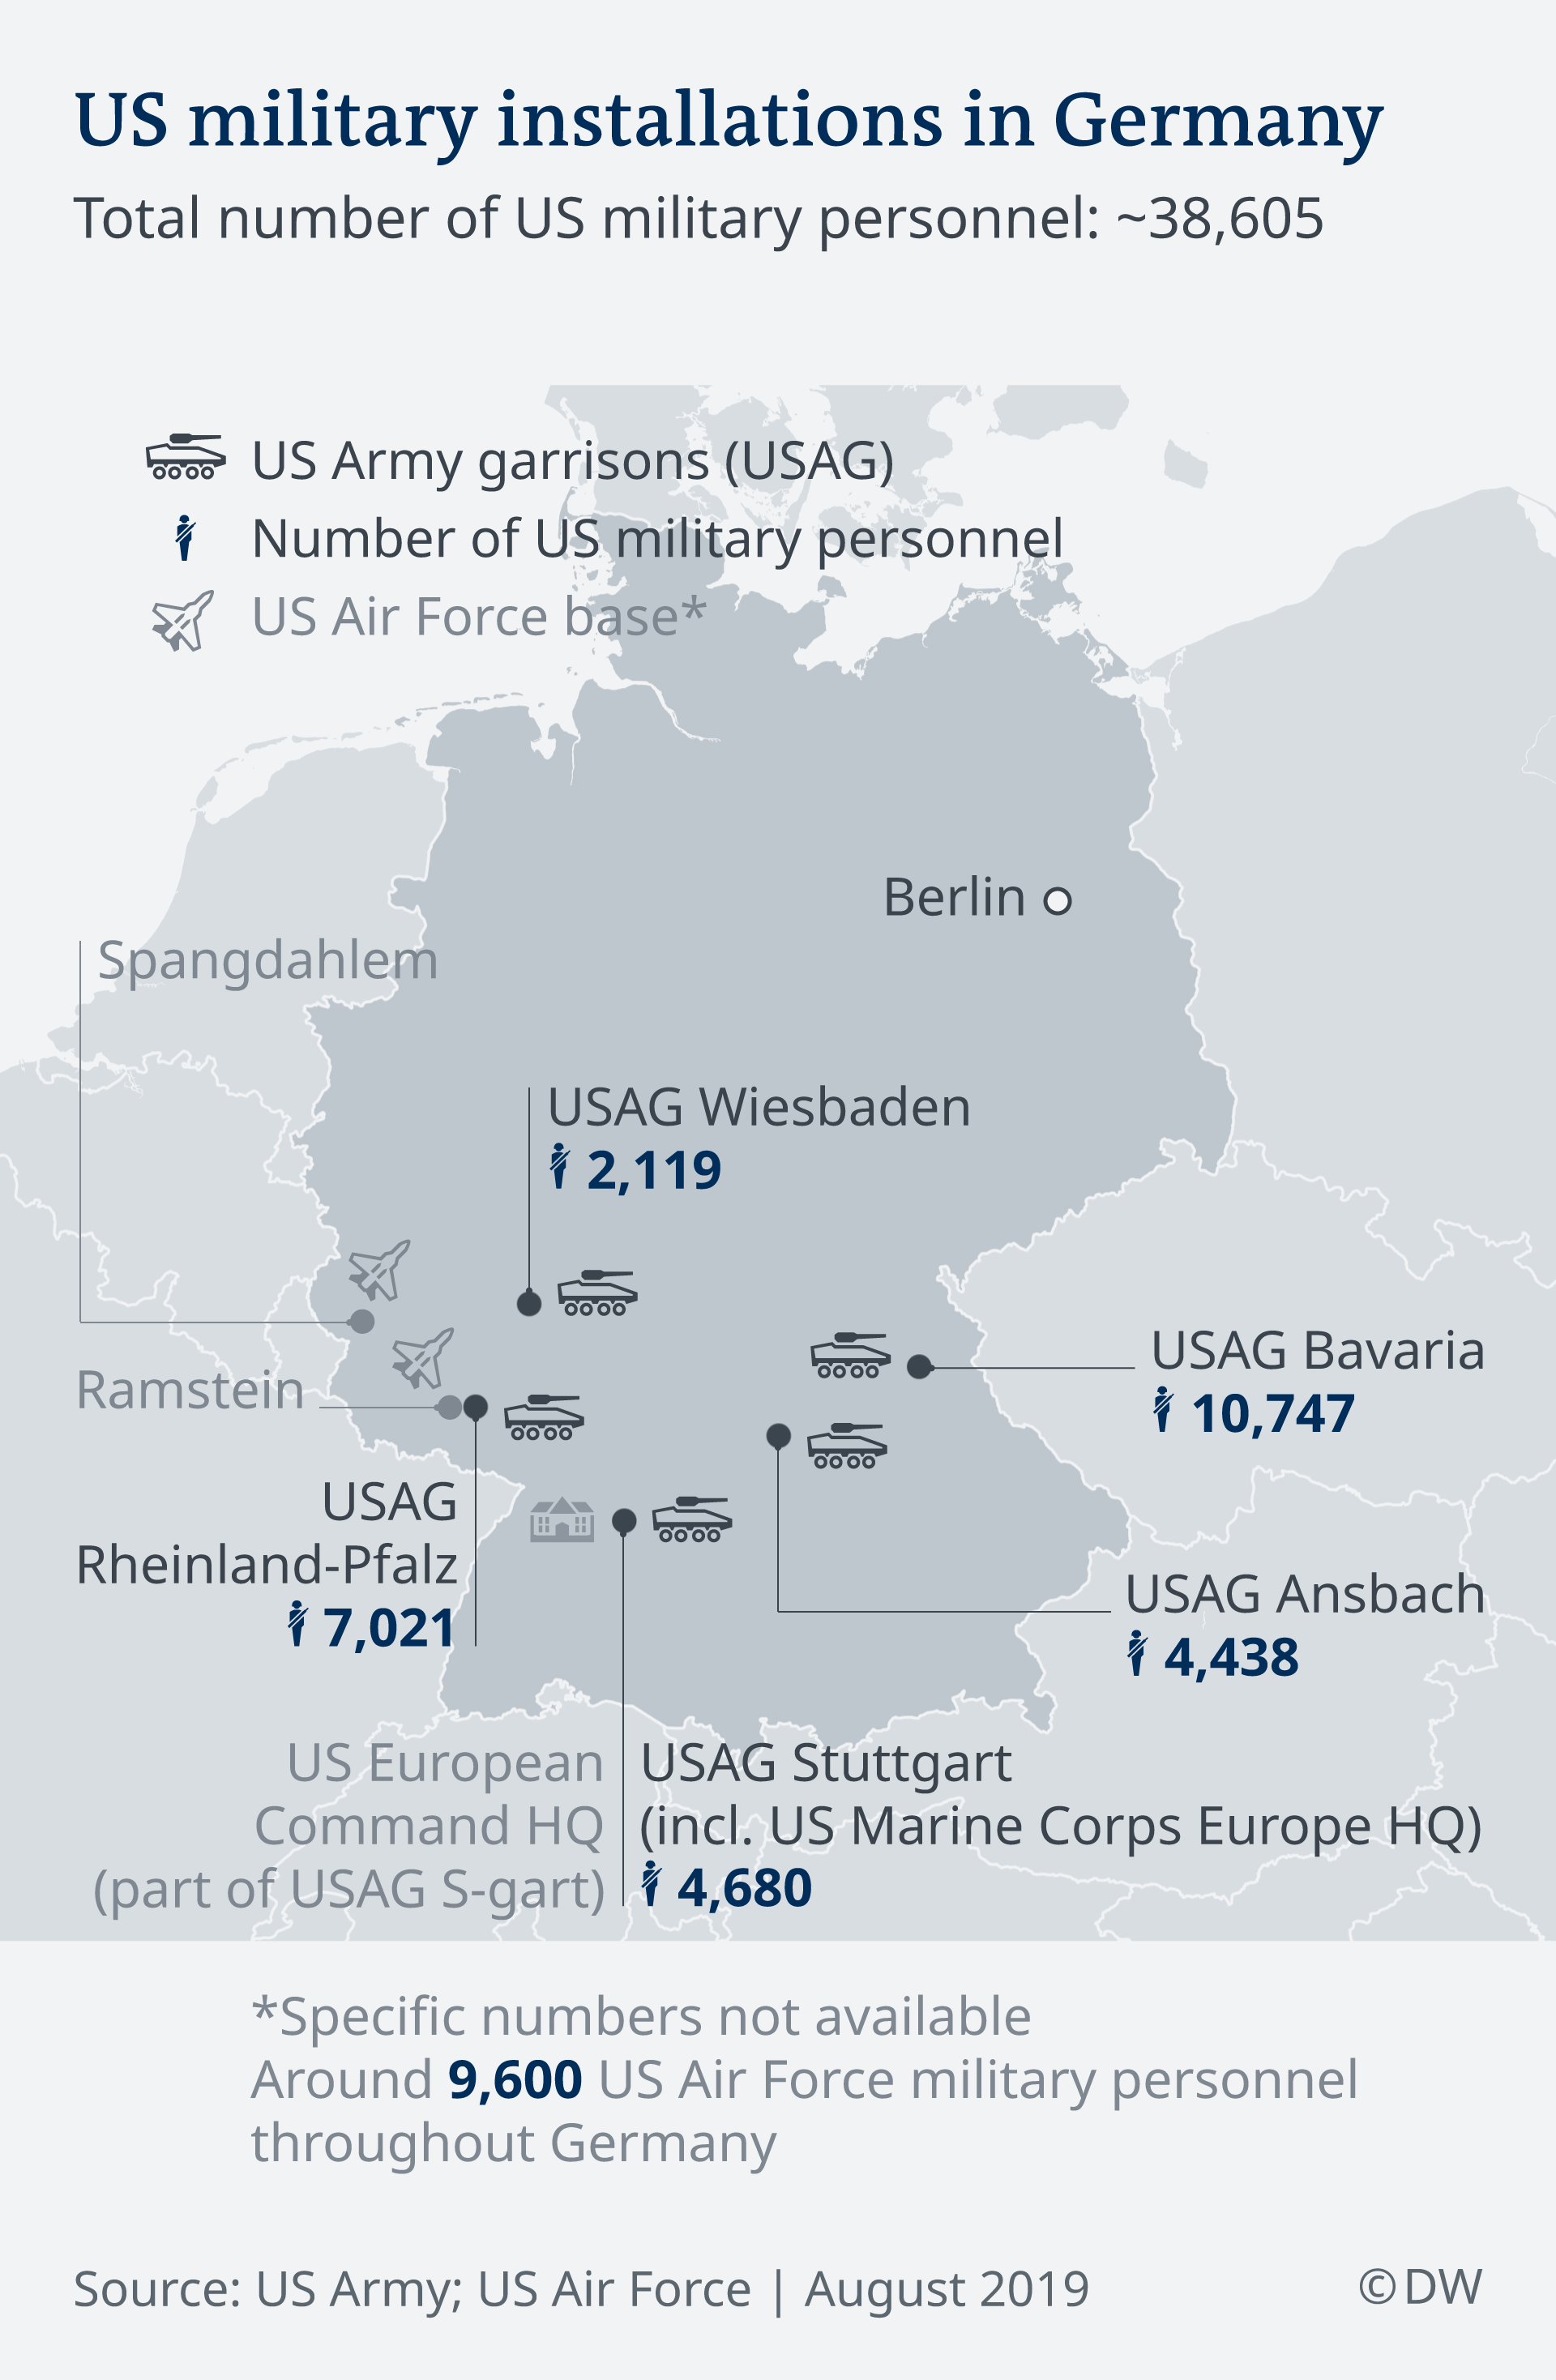 Infographic map showing US military installations in Germany